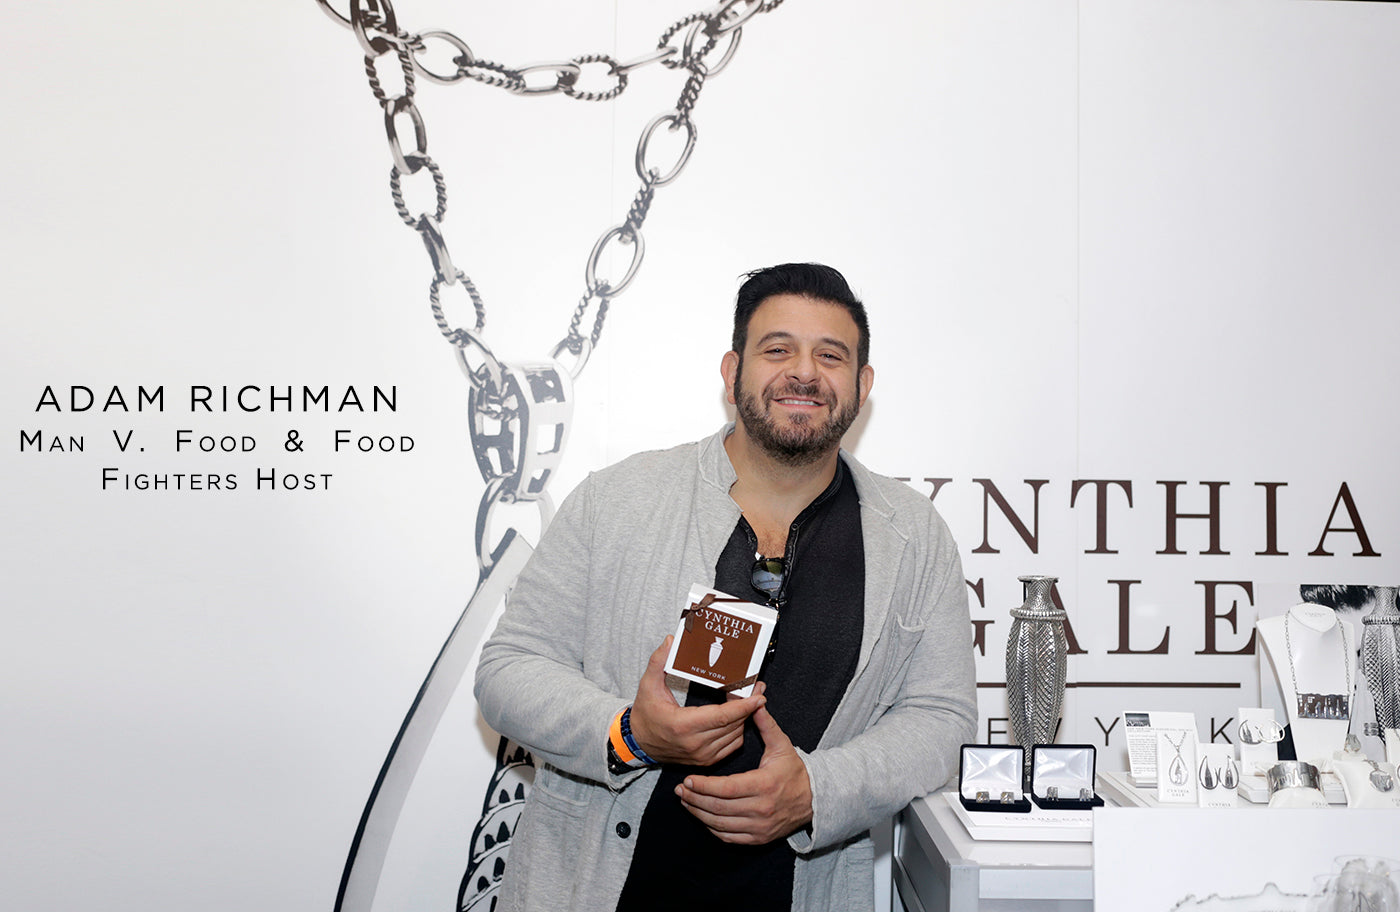 Adam Richman fashion style